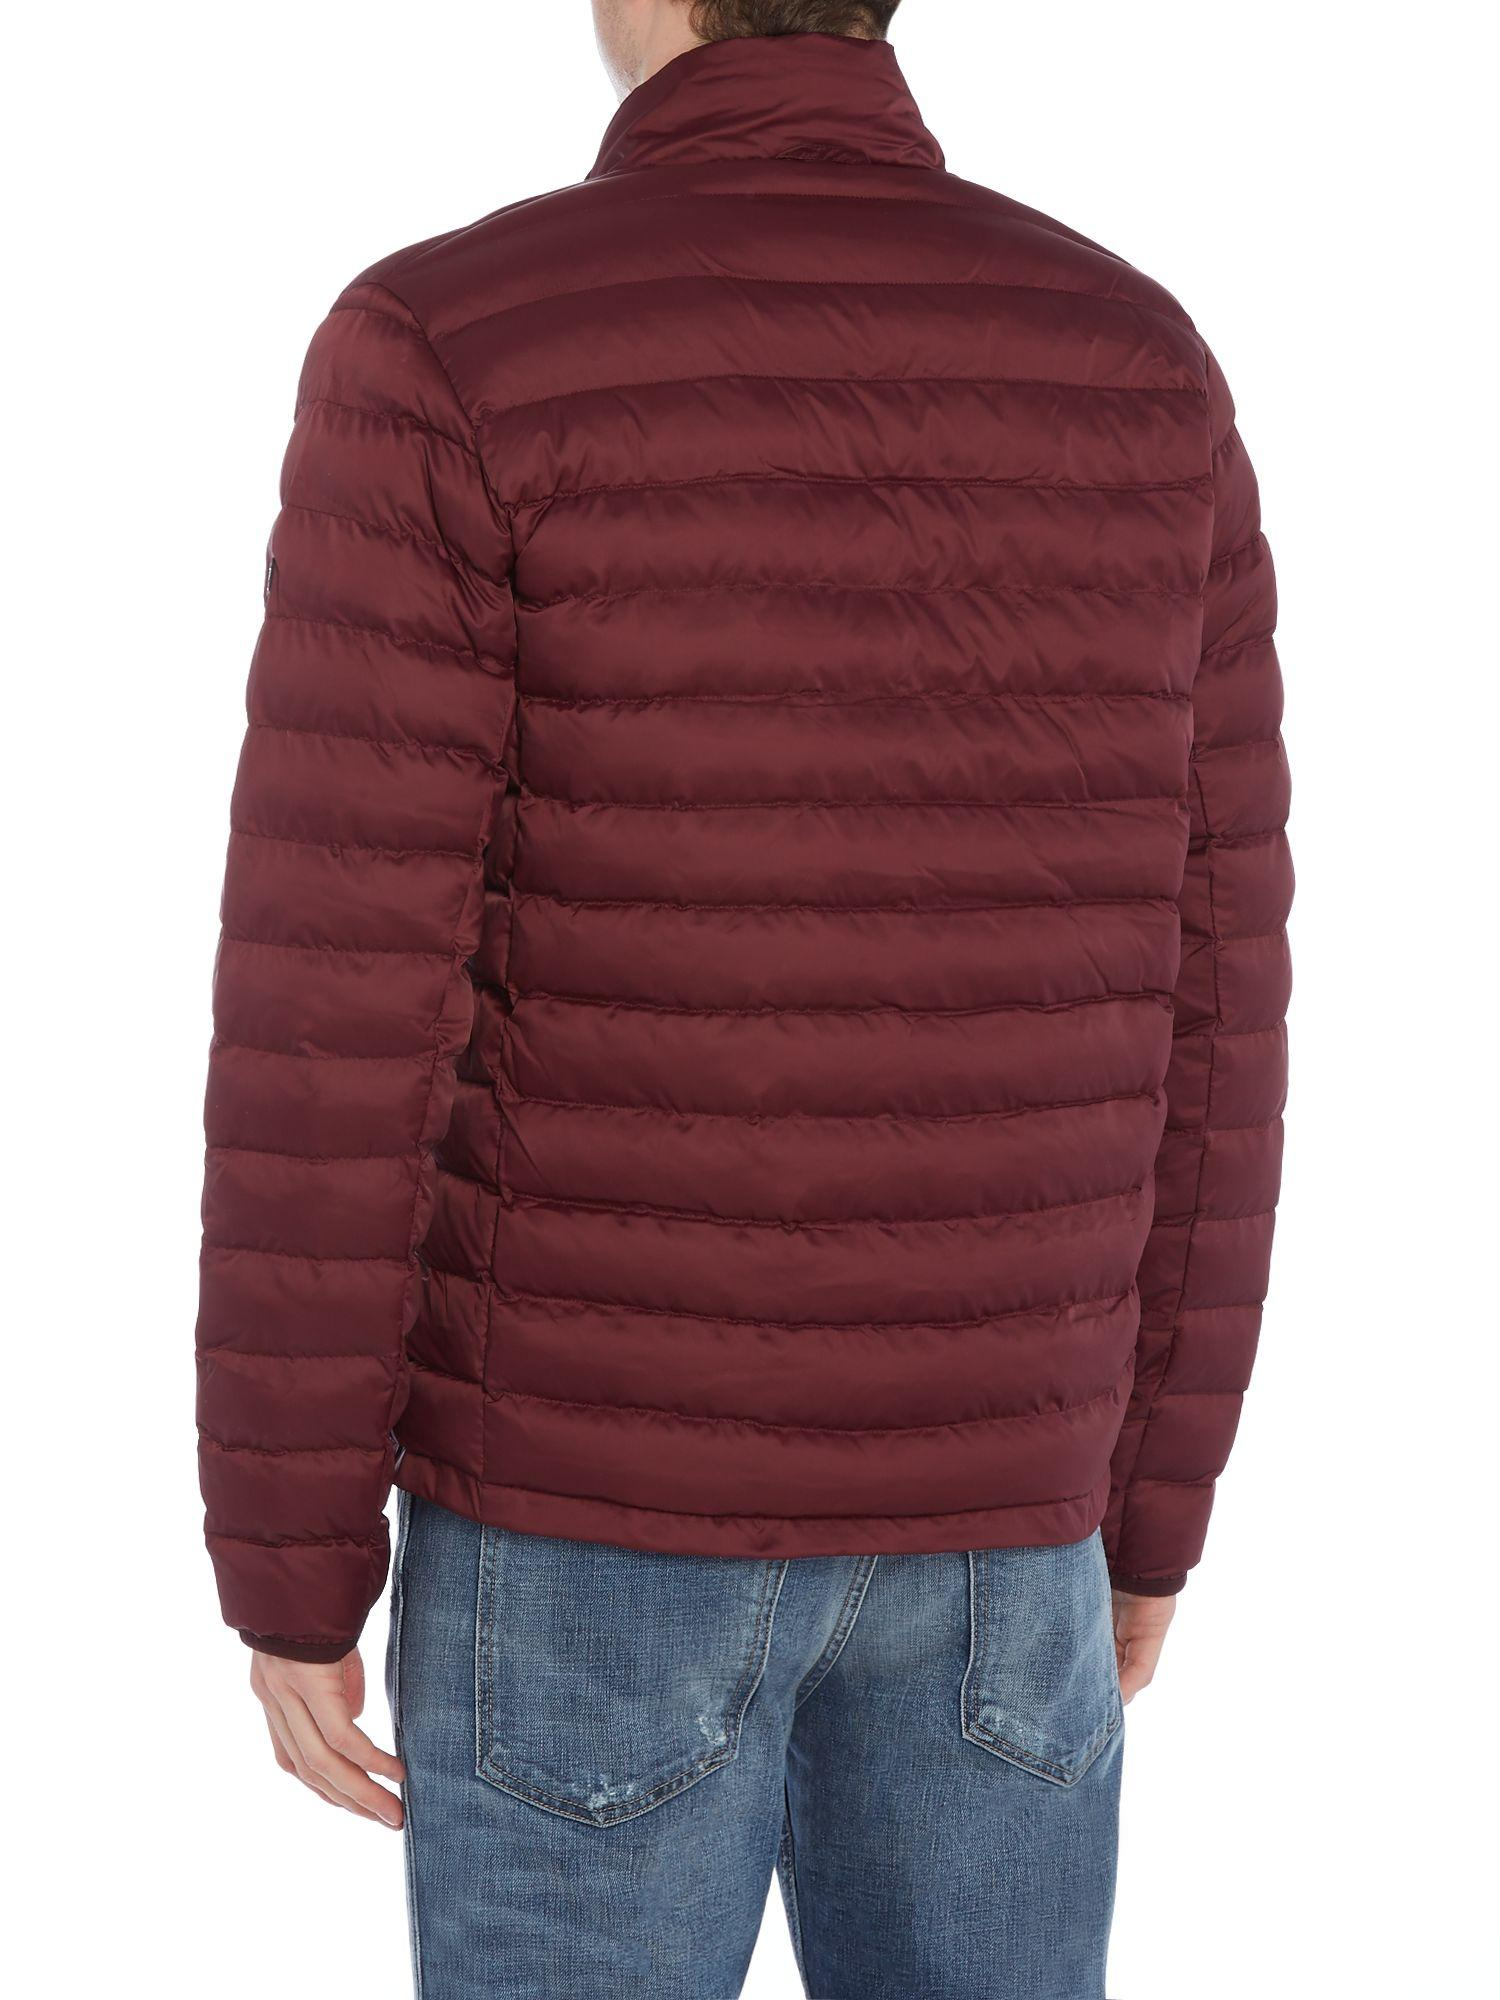 Barbour baffle quilted jacket in red for men lyst for Quilted jackets for men